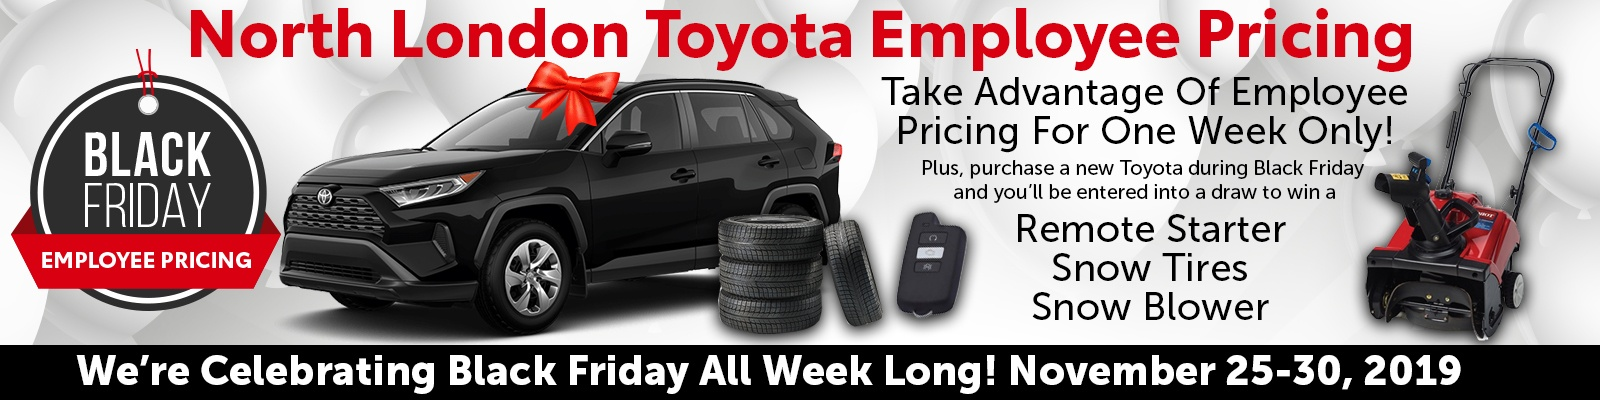 black friday employee pricing toyota